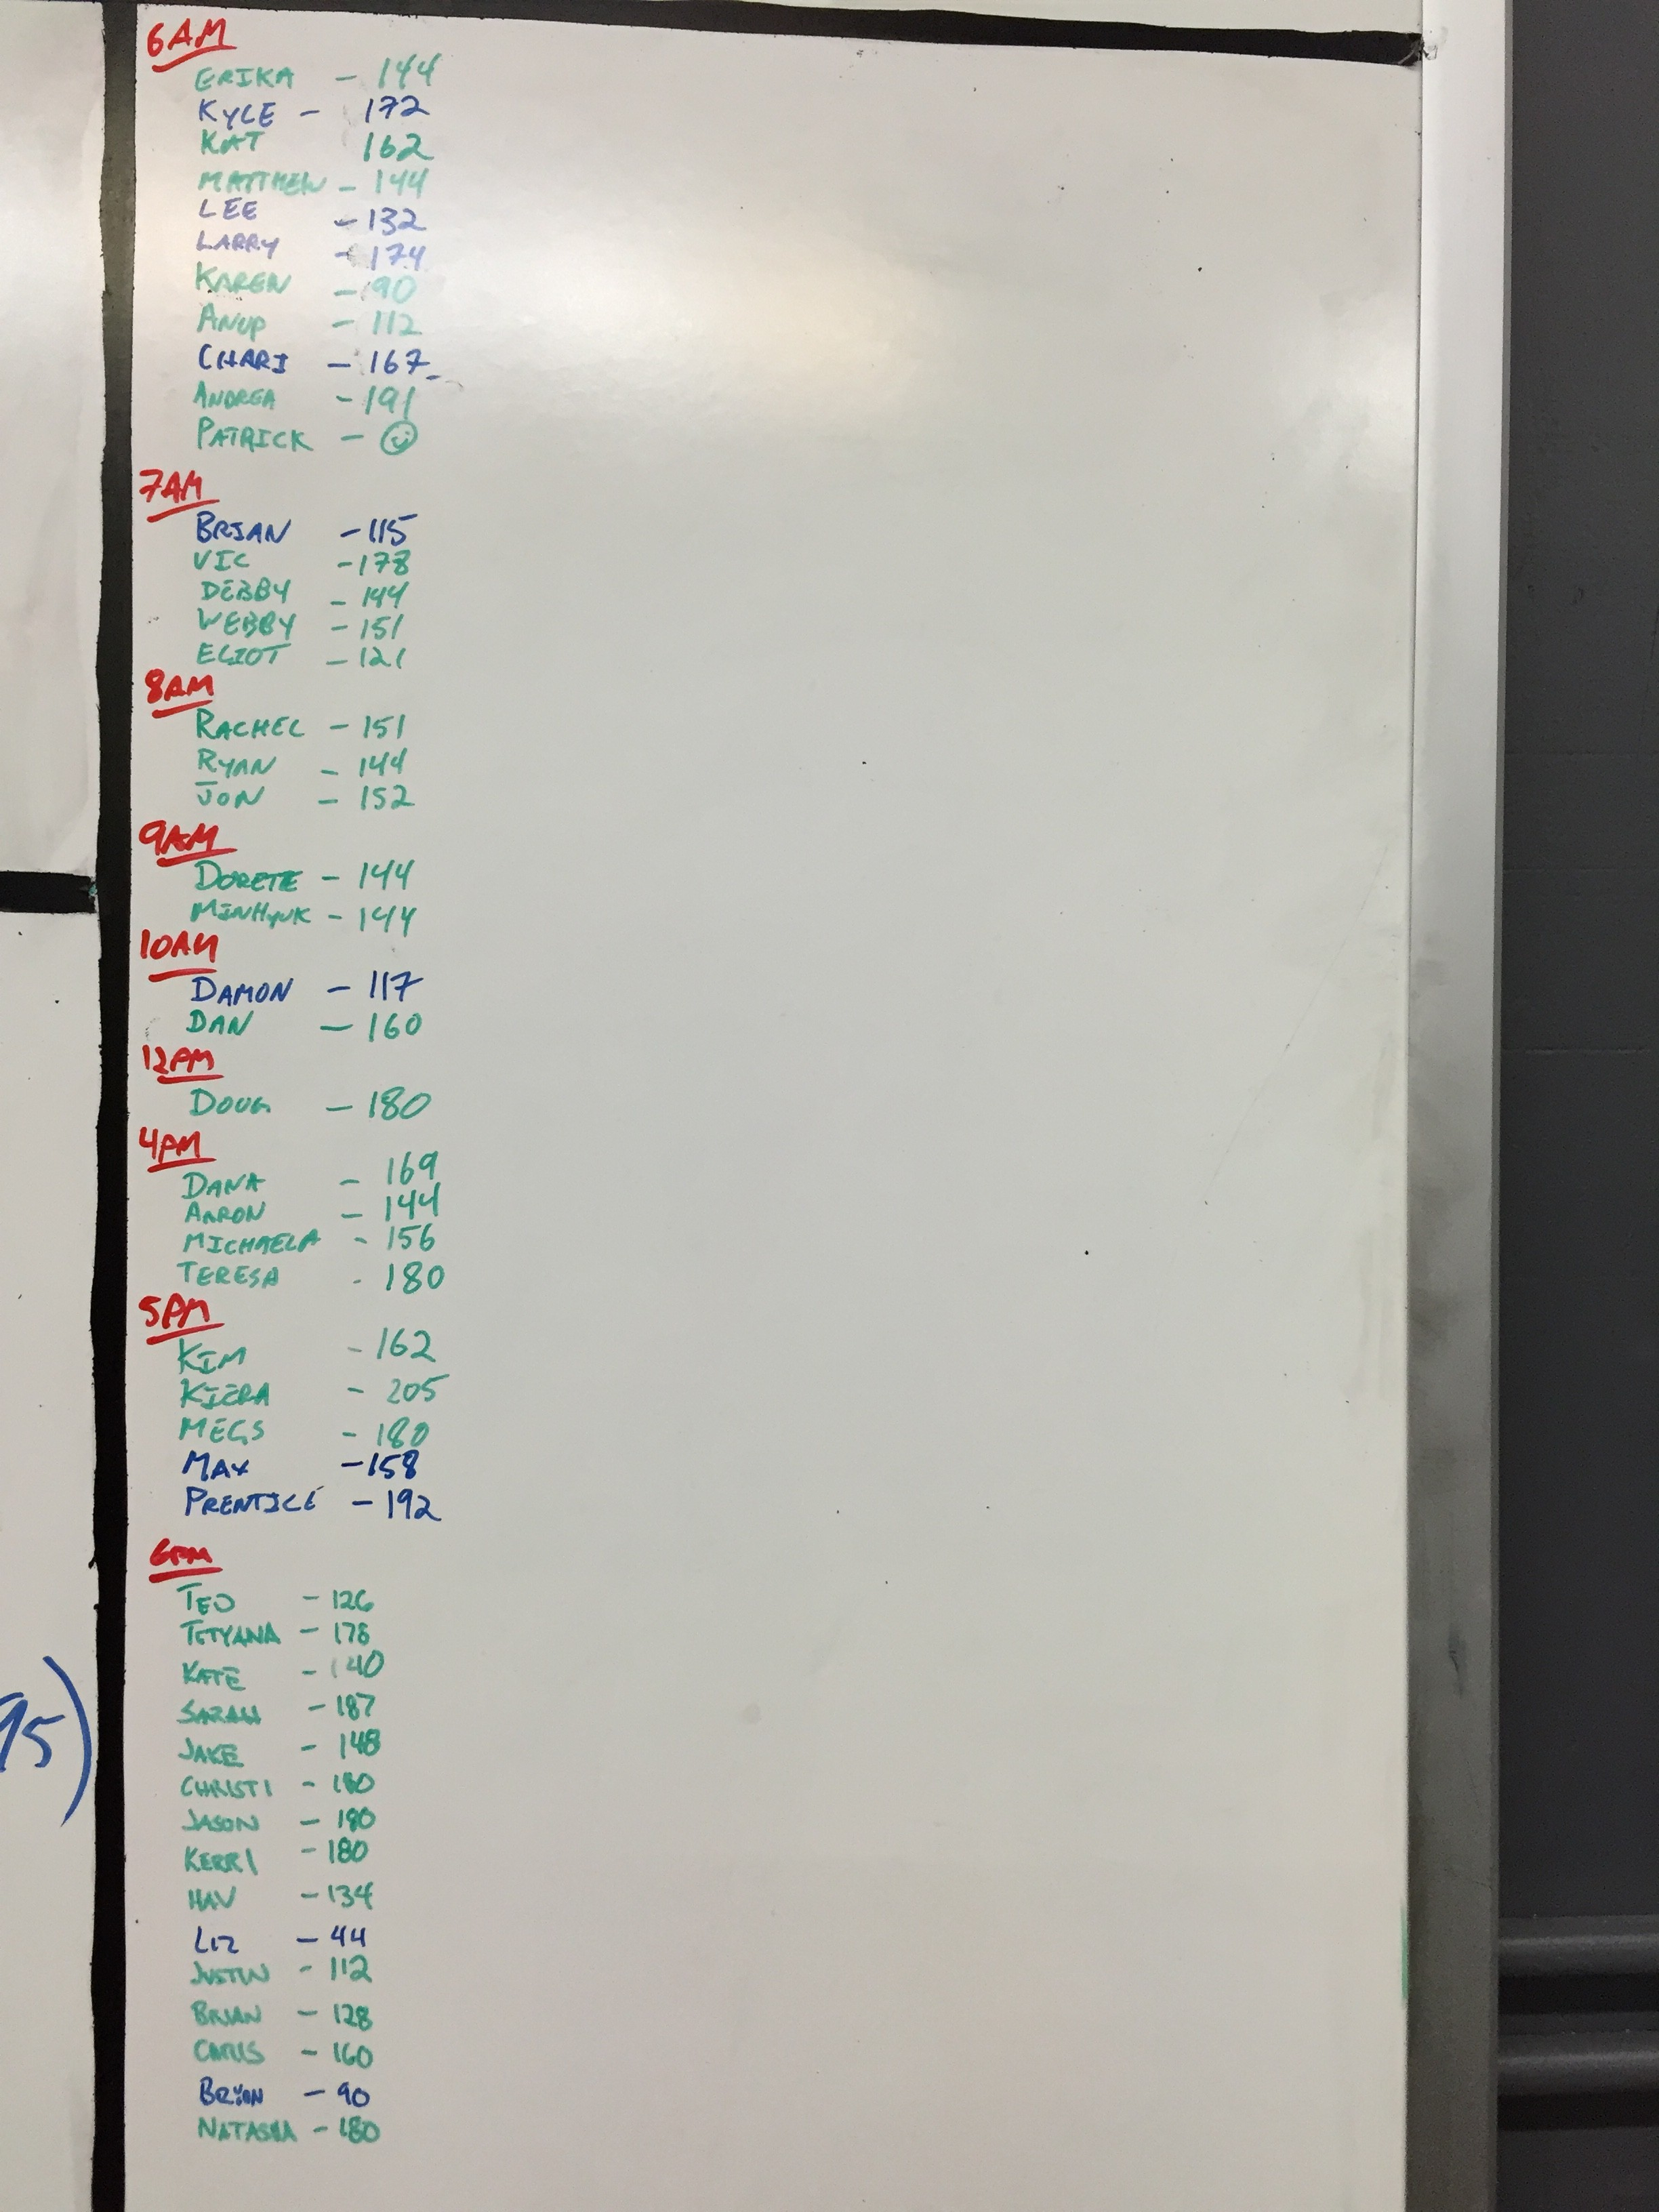 Sep 22 WOD Results